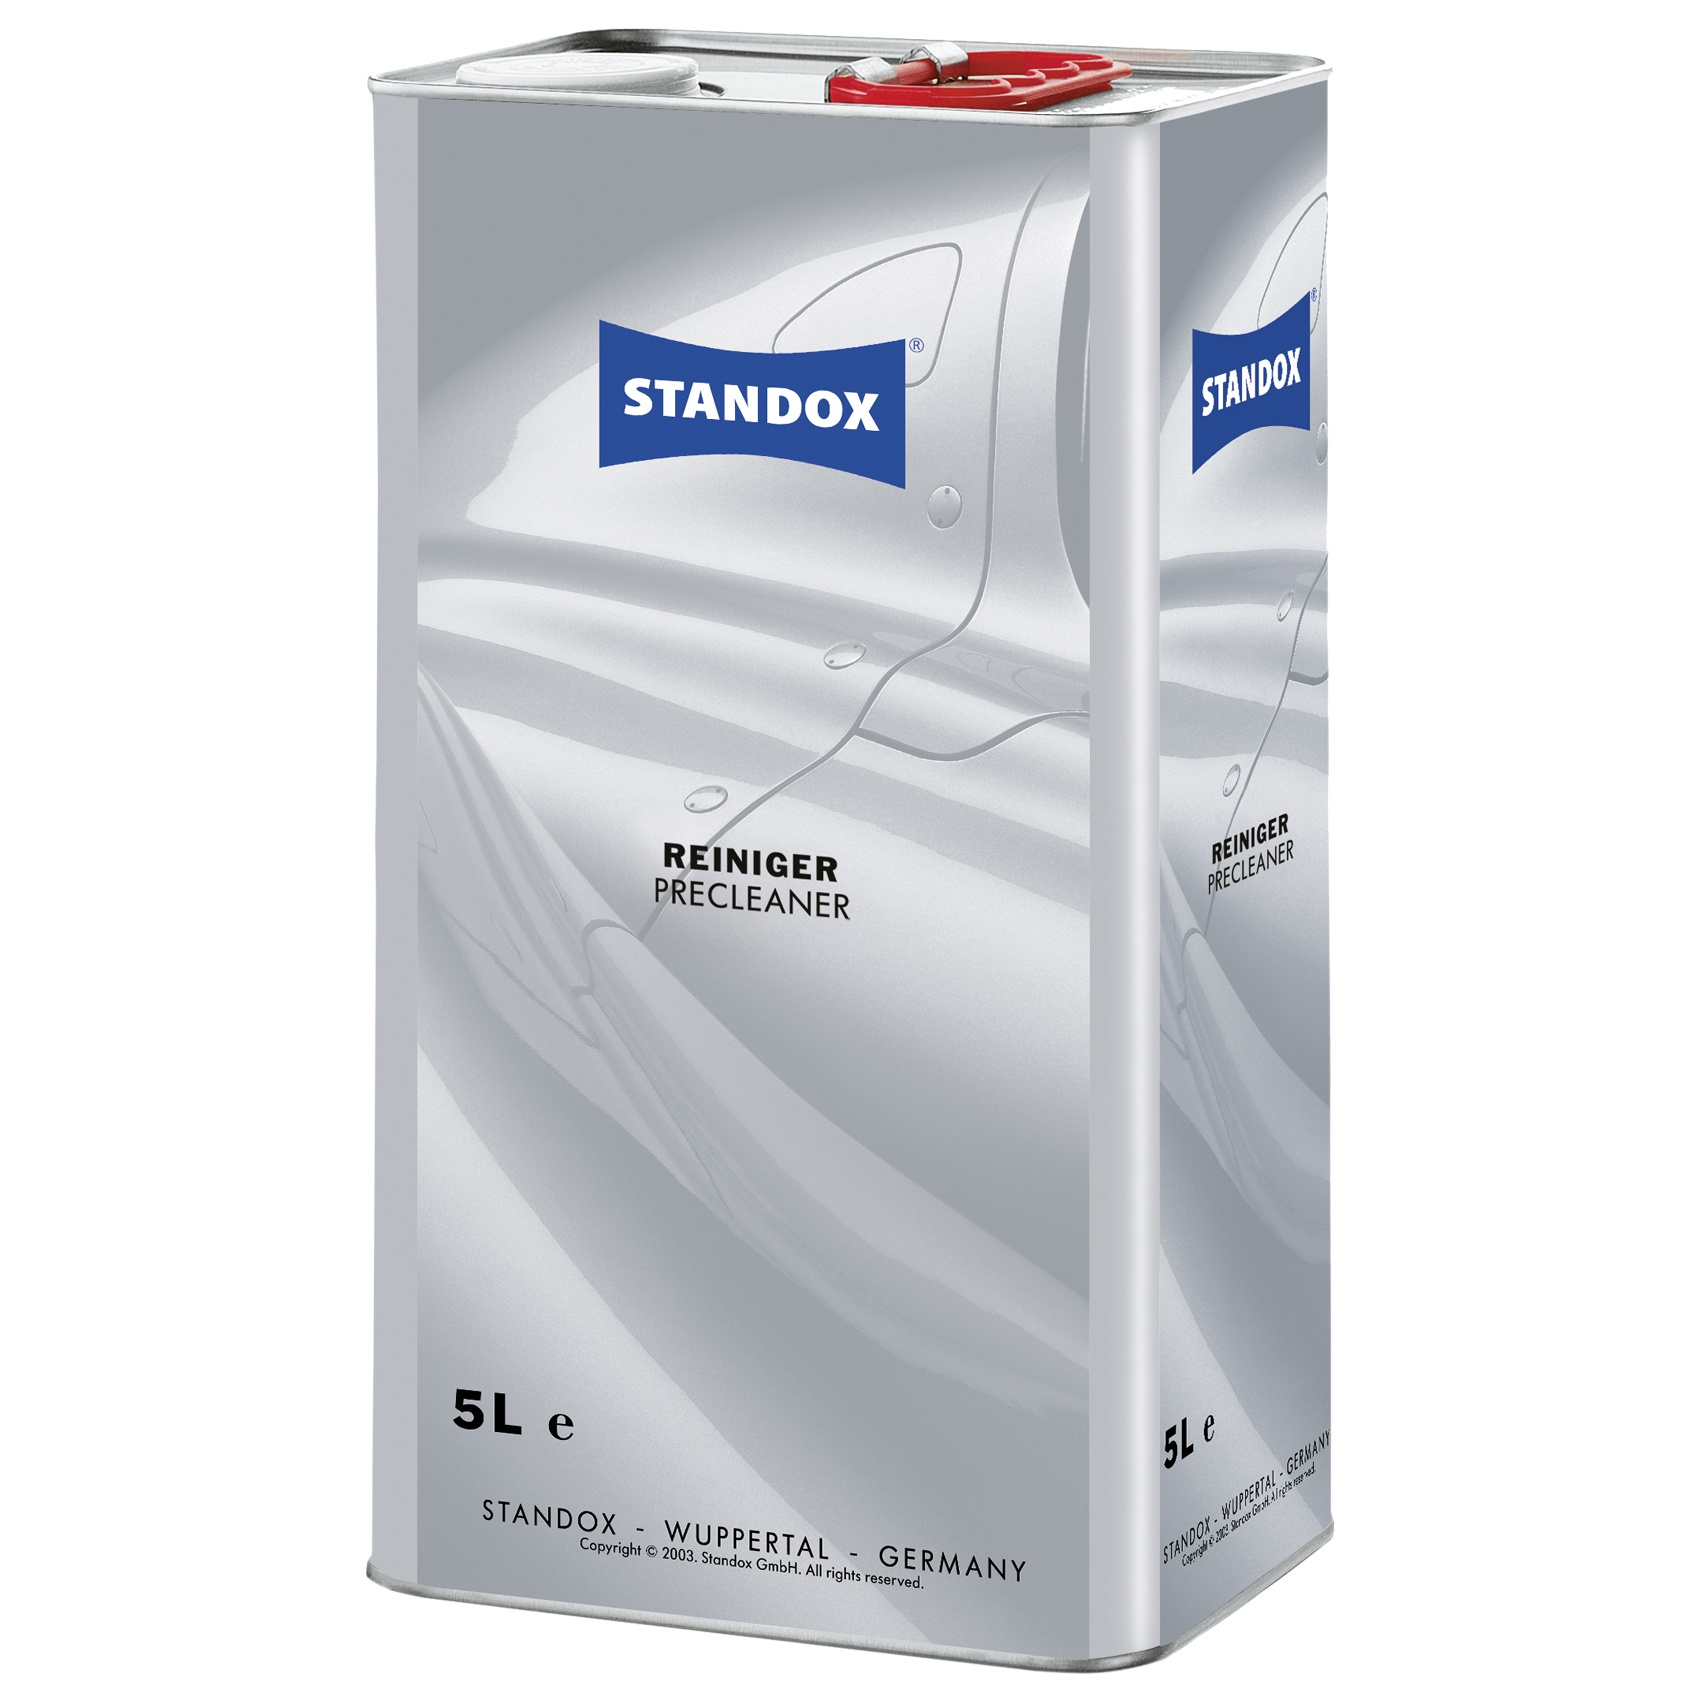 Standox Pre-Cleaner